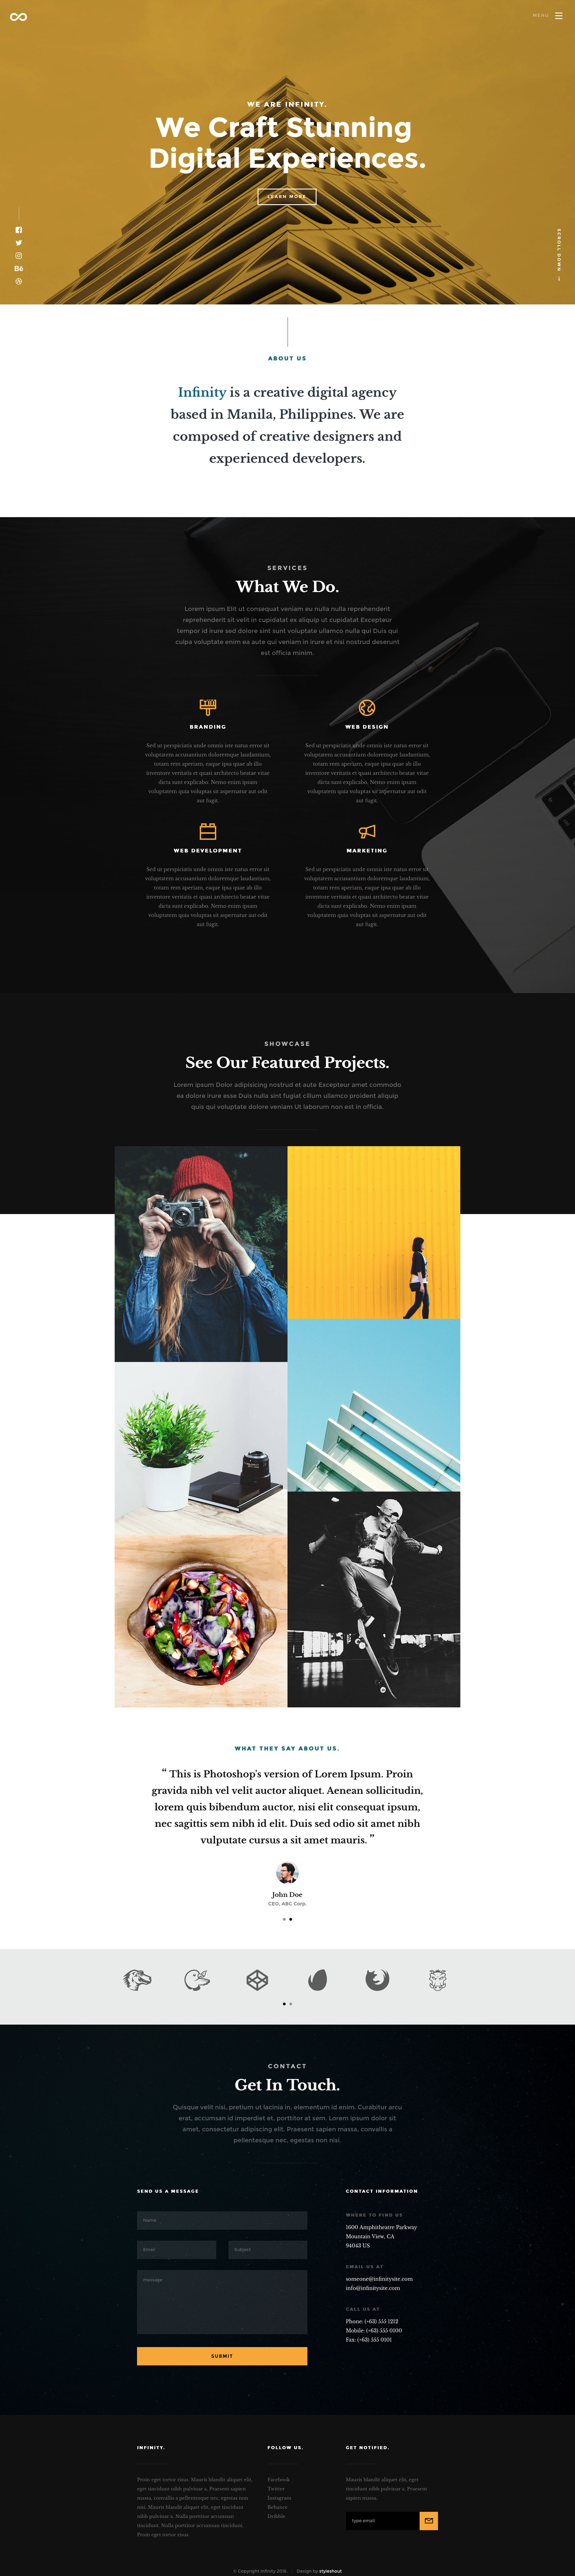 Infinity is a free clean and modern responsive HTML5 website template designed for creatives and agencies. Infinity template is mobile and retina/hi-dpi ready, it has clean and well organized code which makes the template very easy to customize.